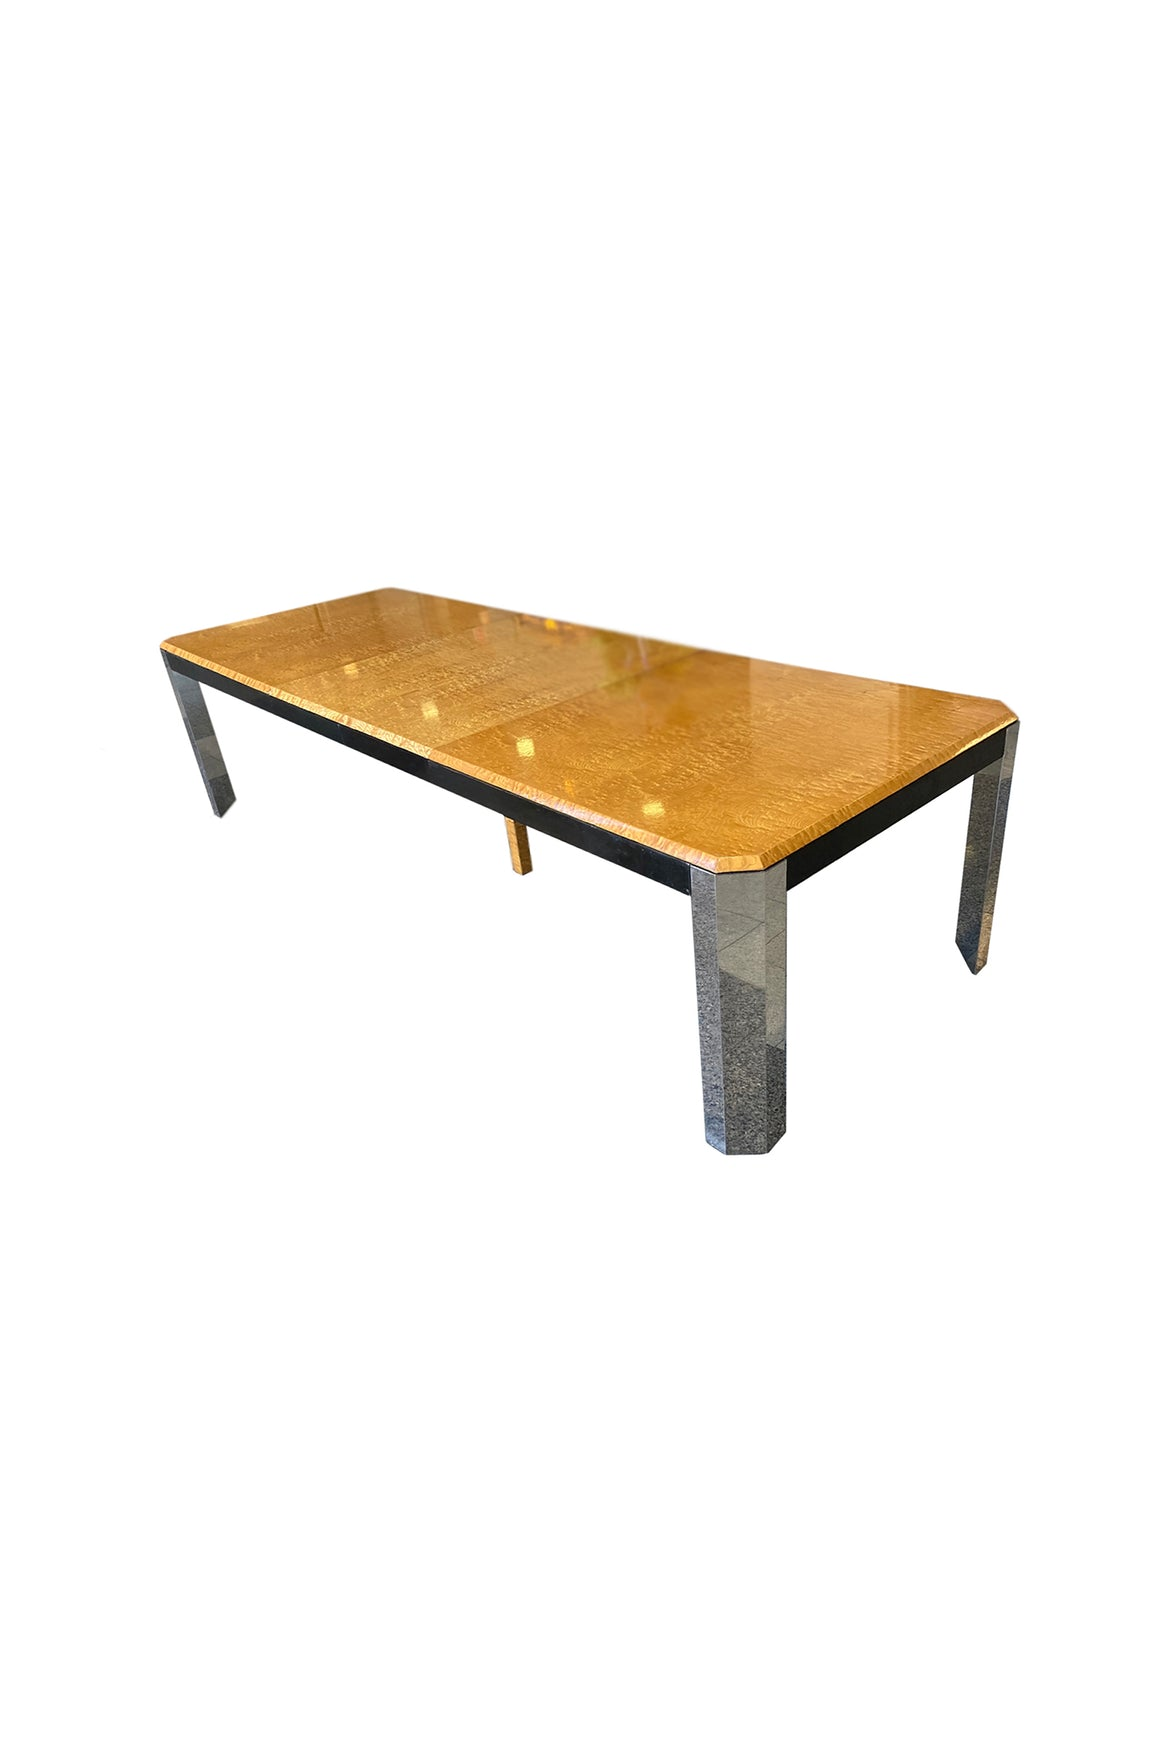 1970s Burl & Chrome Dining Table Attributed to Milo Baughman